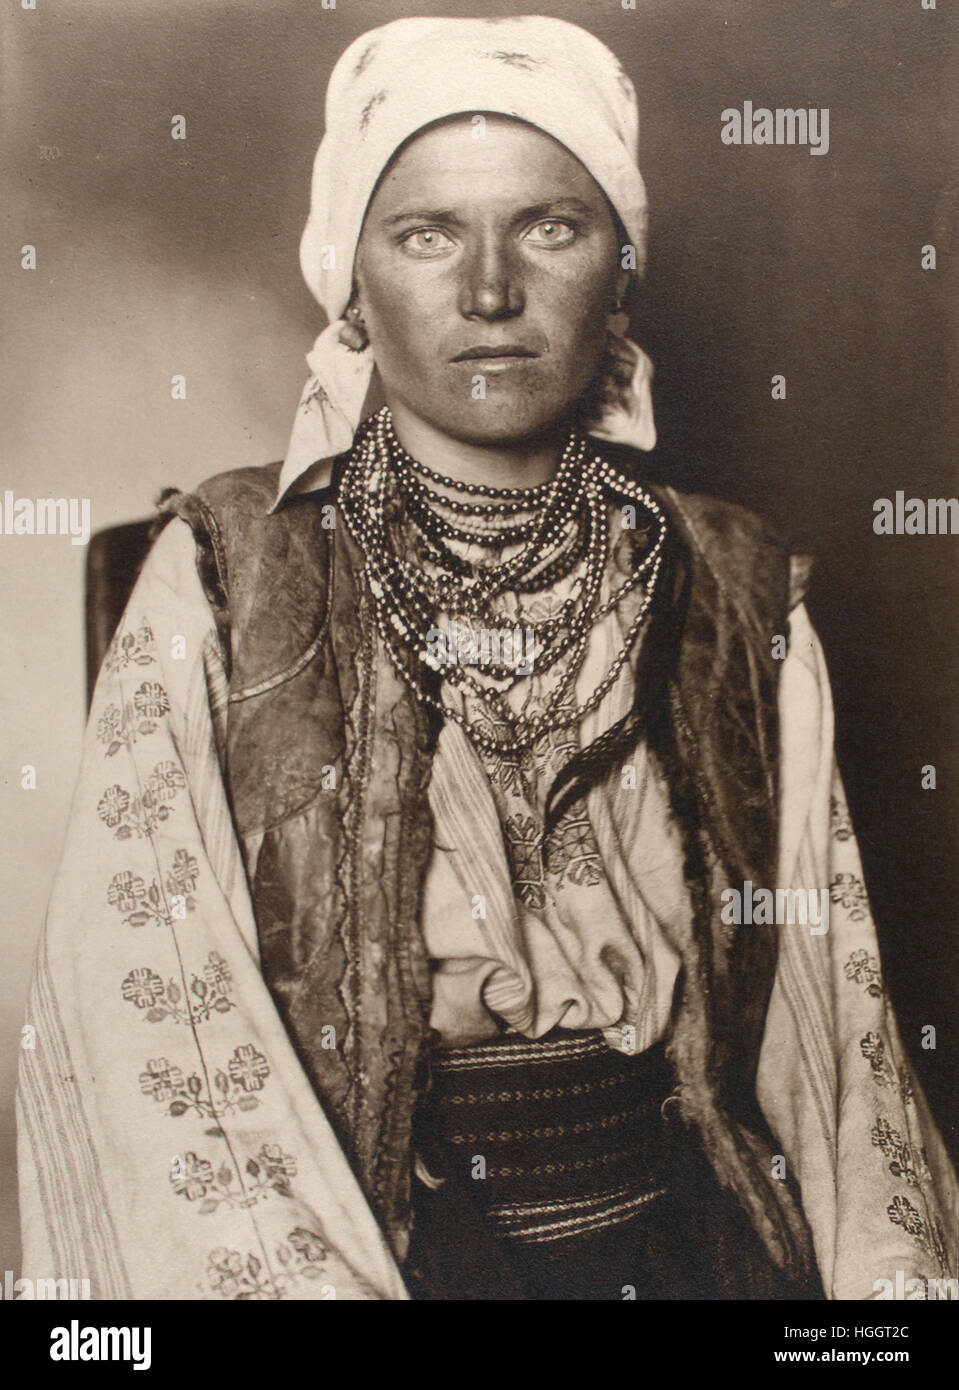 Portrait de femme ruthène - Station de l'Immigration d'Ellis Island - 1902-1913 Photo : Augustus Sherman Banque D'Images